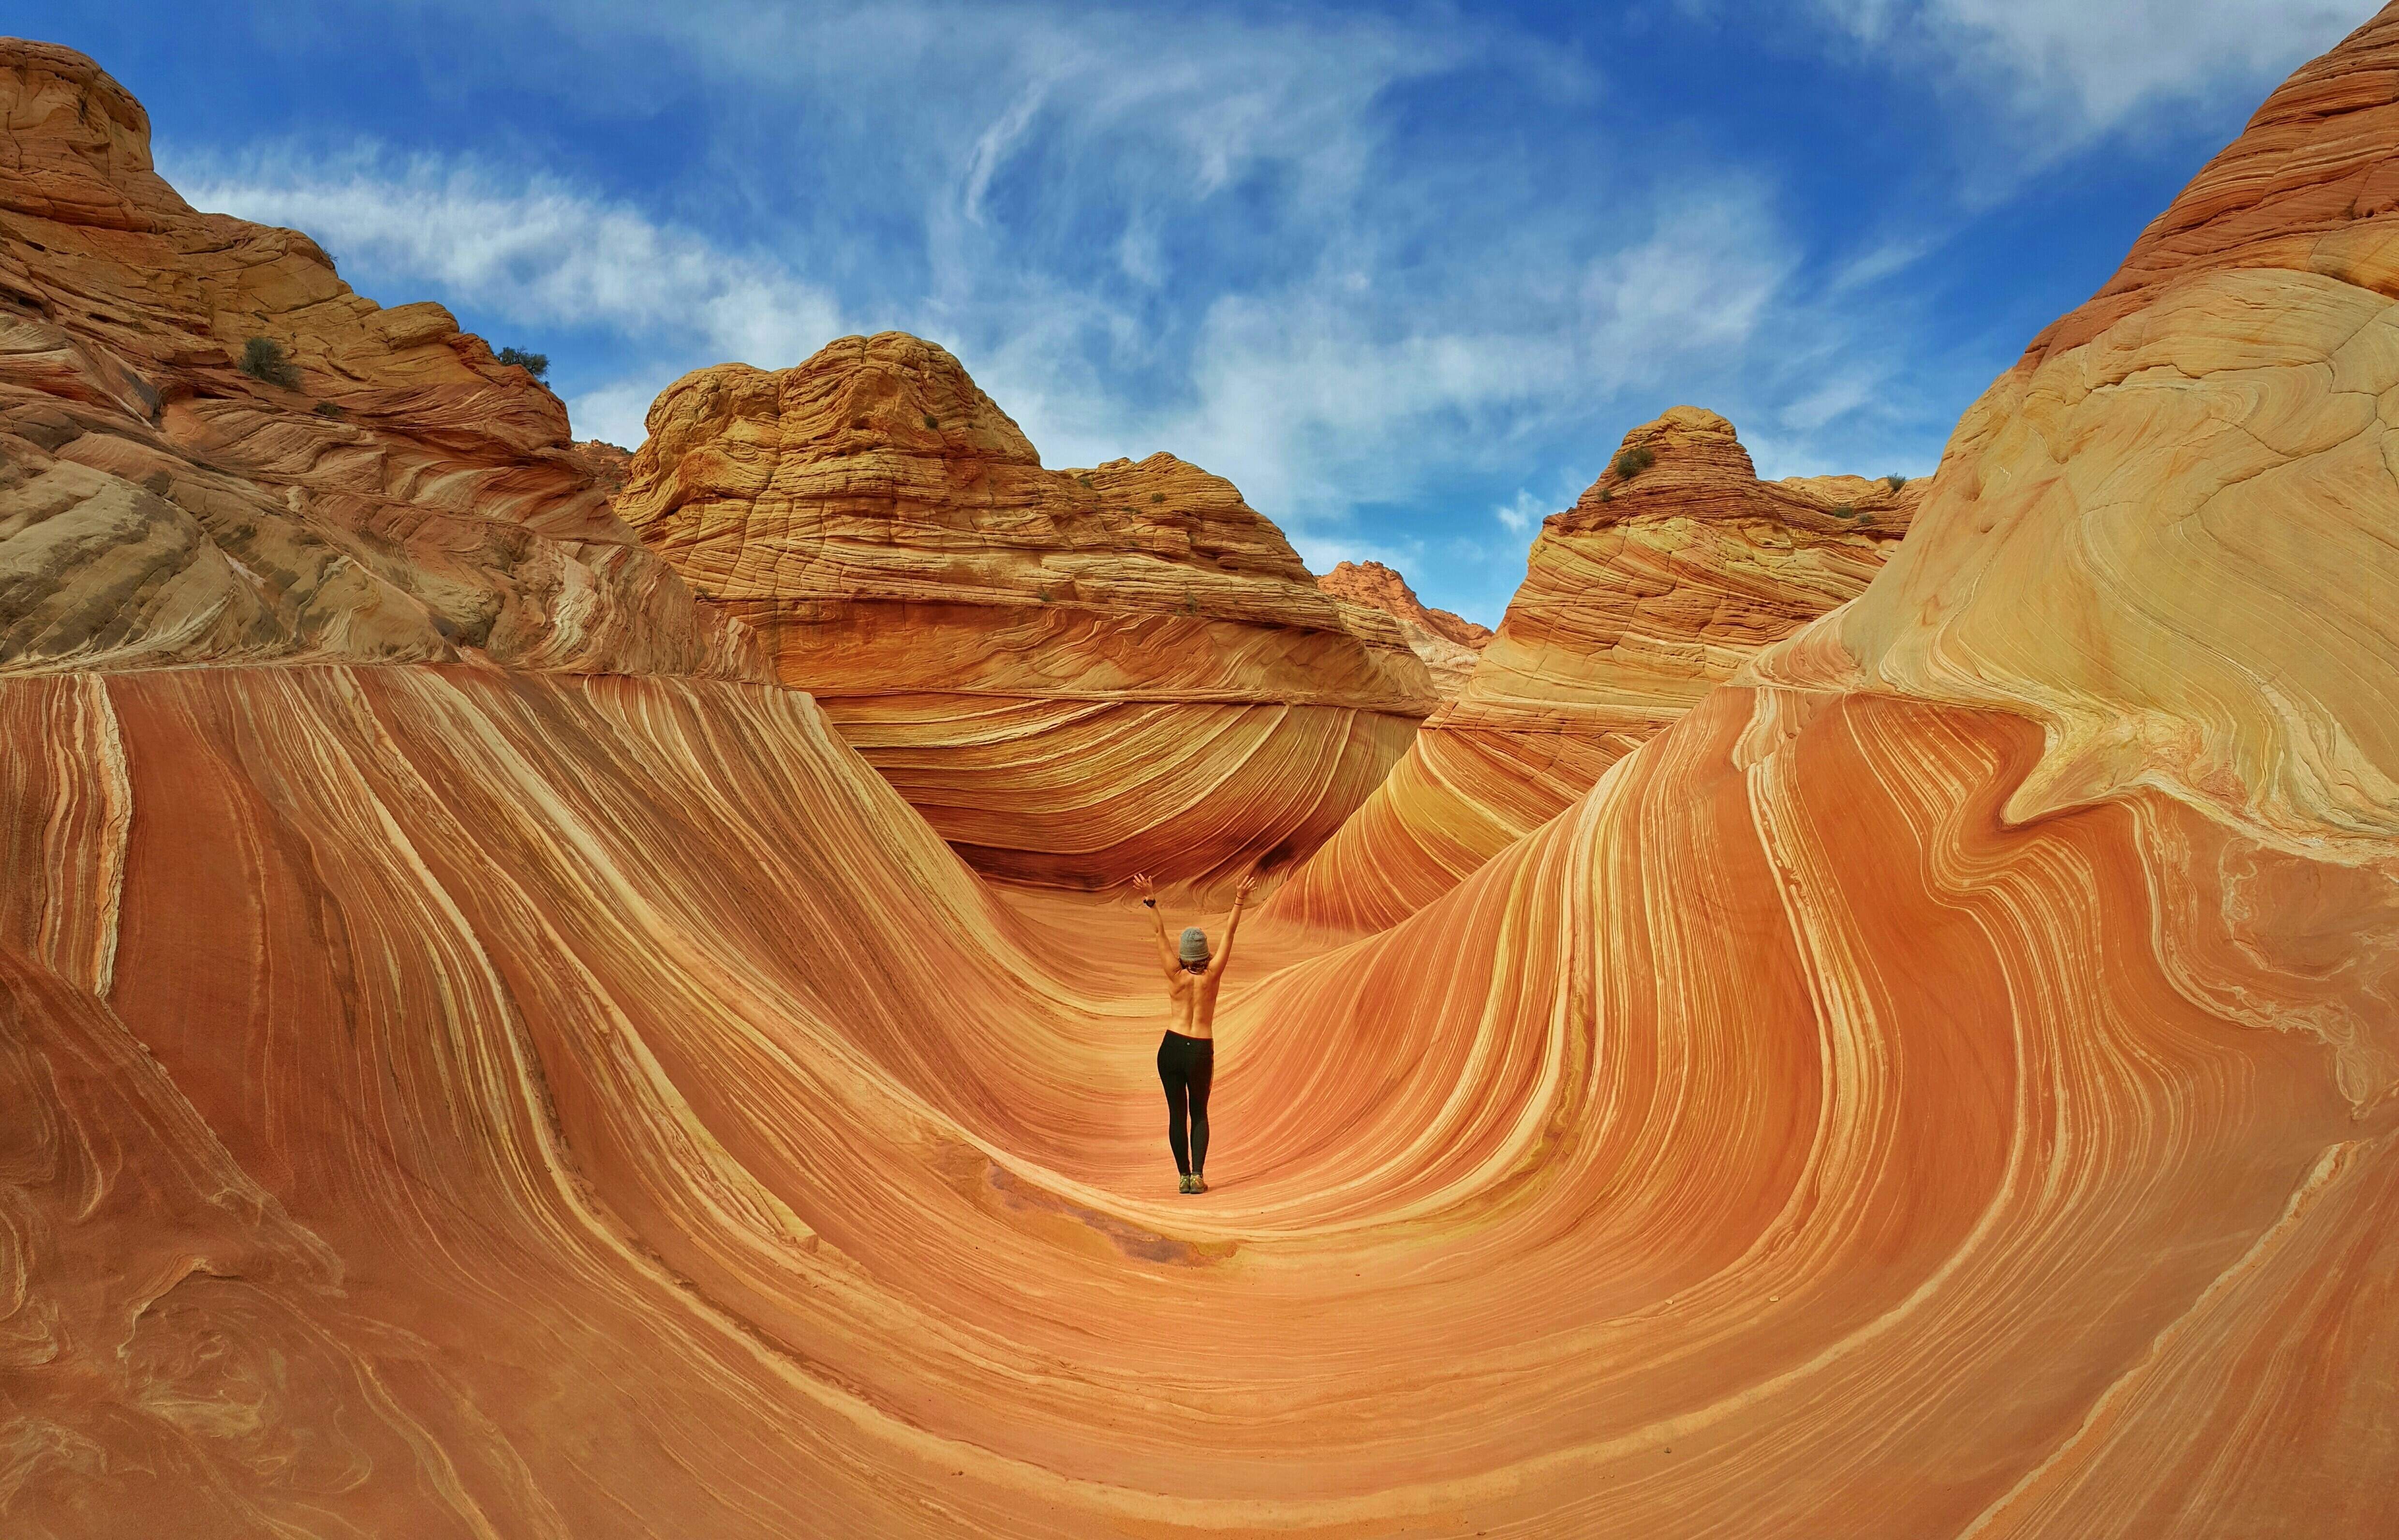 lady with no top on at The Wave in Coyote Butte, Arizona